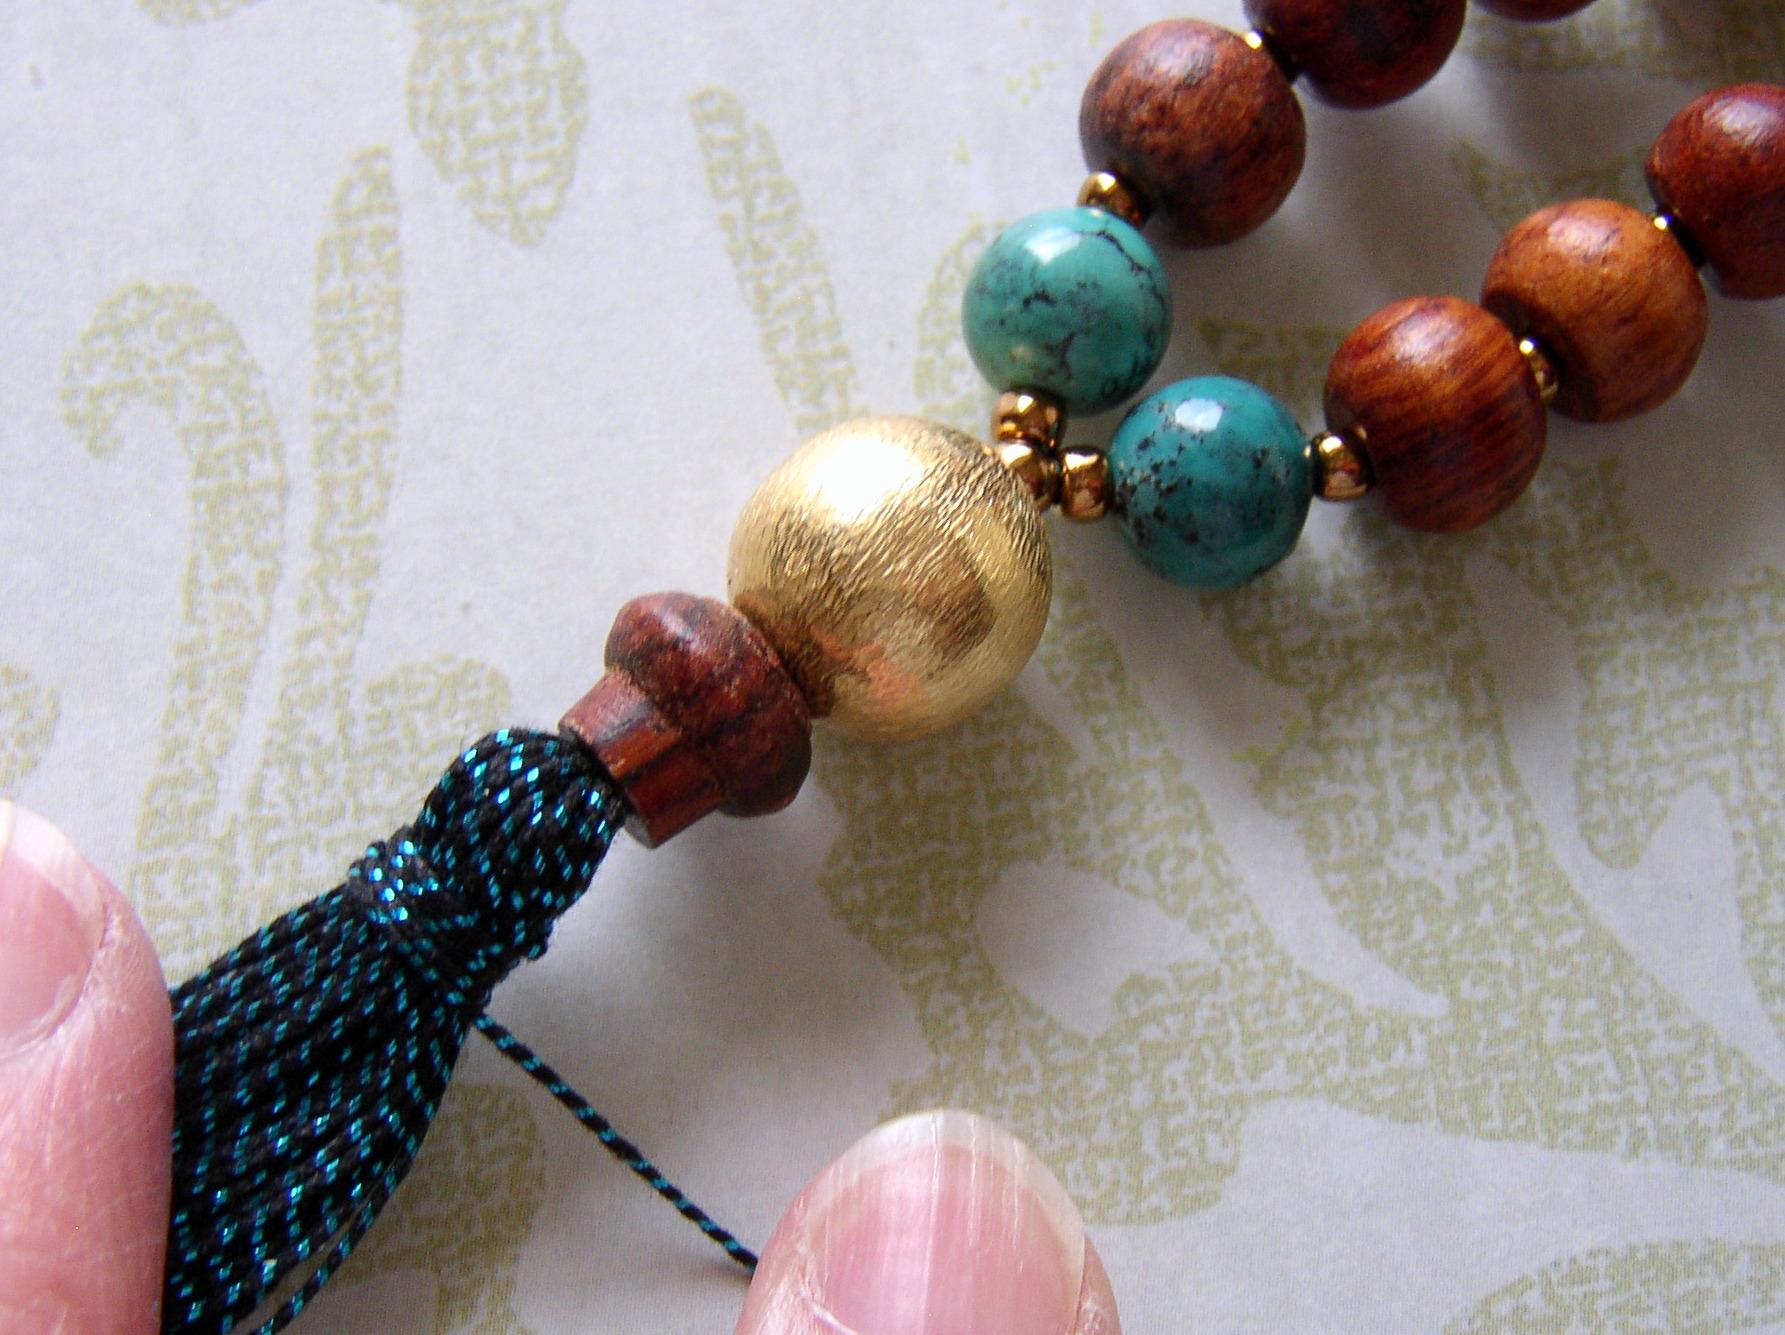 Wrap the tassel cord around the tassel to finish it,